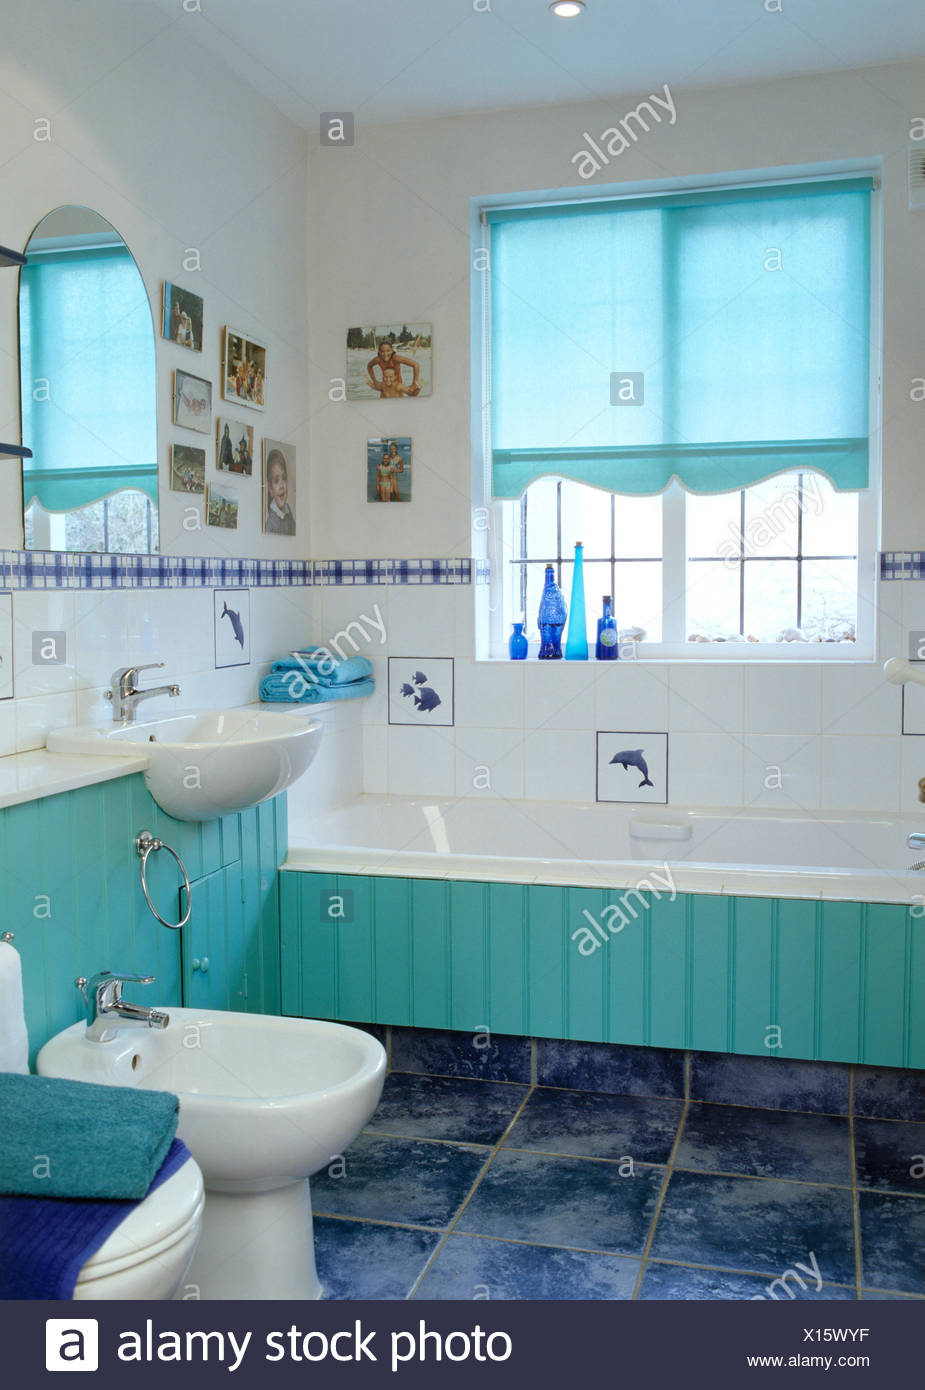 Turquoise Blind On Window Above Turquoise Tongue+groove Panelled Bath In Small  White Bathroom With White Bidet